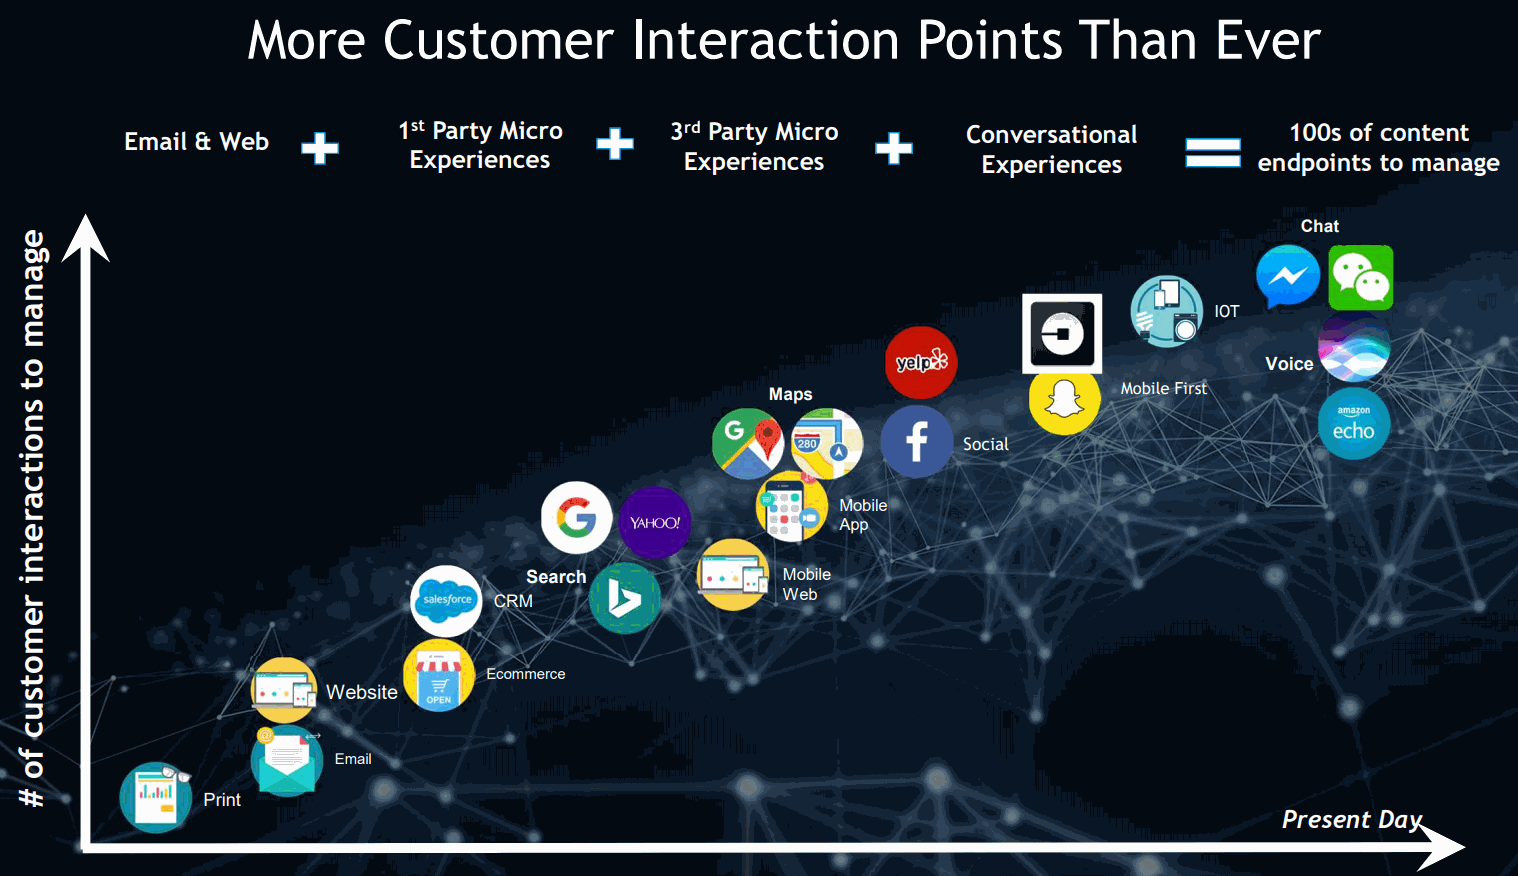 Yext-More-Customer-Interaction-Points-Than-Ever